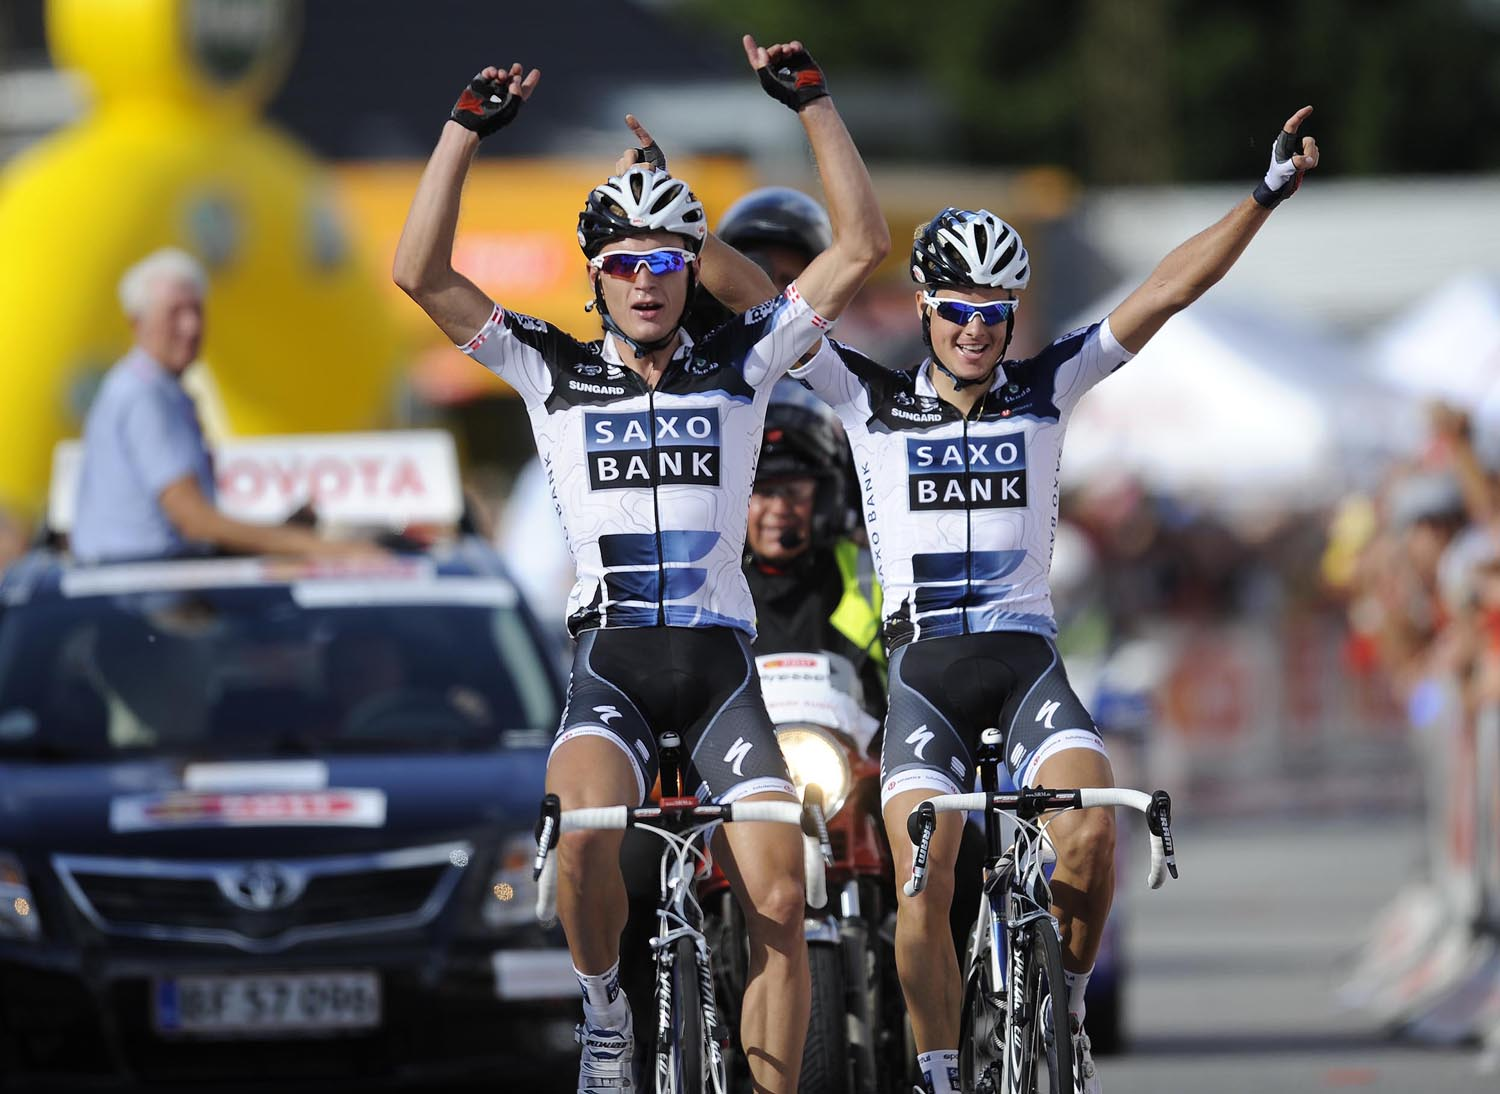 Matti Breschel wins with Jakob Fuglsang second, Tour of Denmark 2010, stage 3